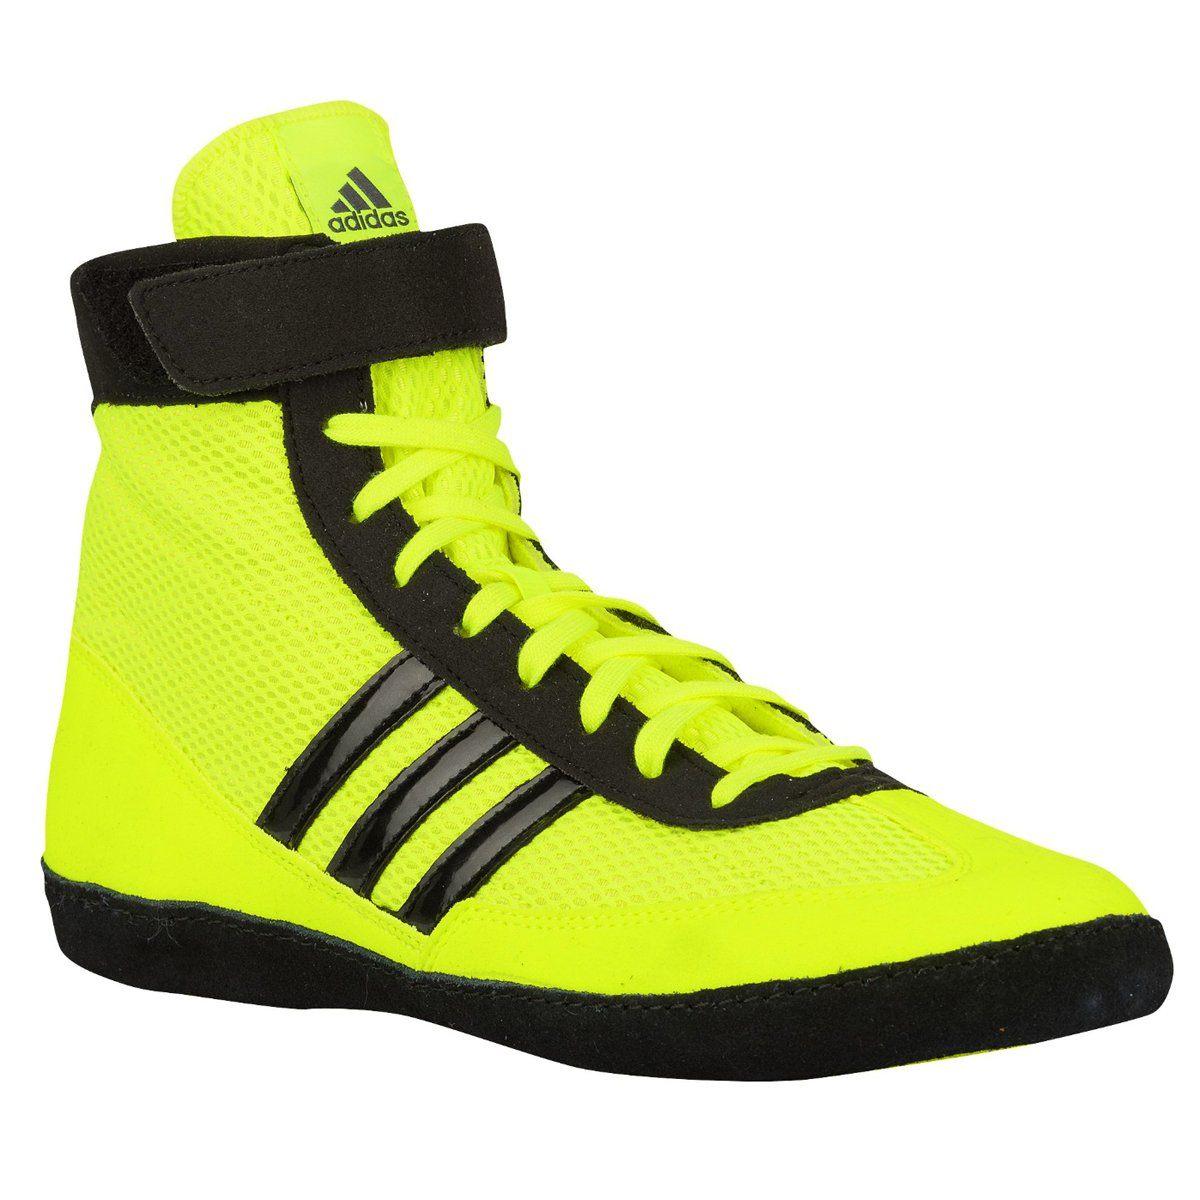 ... gear e3923 c2367 new zealand amazon adidas wrestling mens combat speed 4  m wrestling fbe8a 6d994 ... 00483d6ae